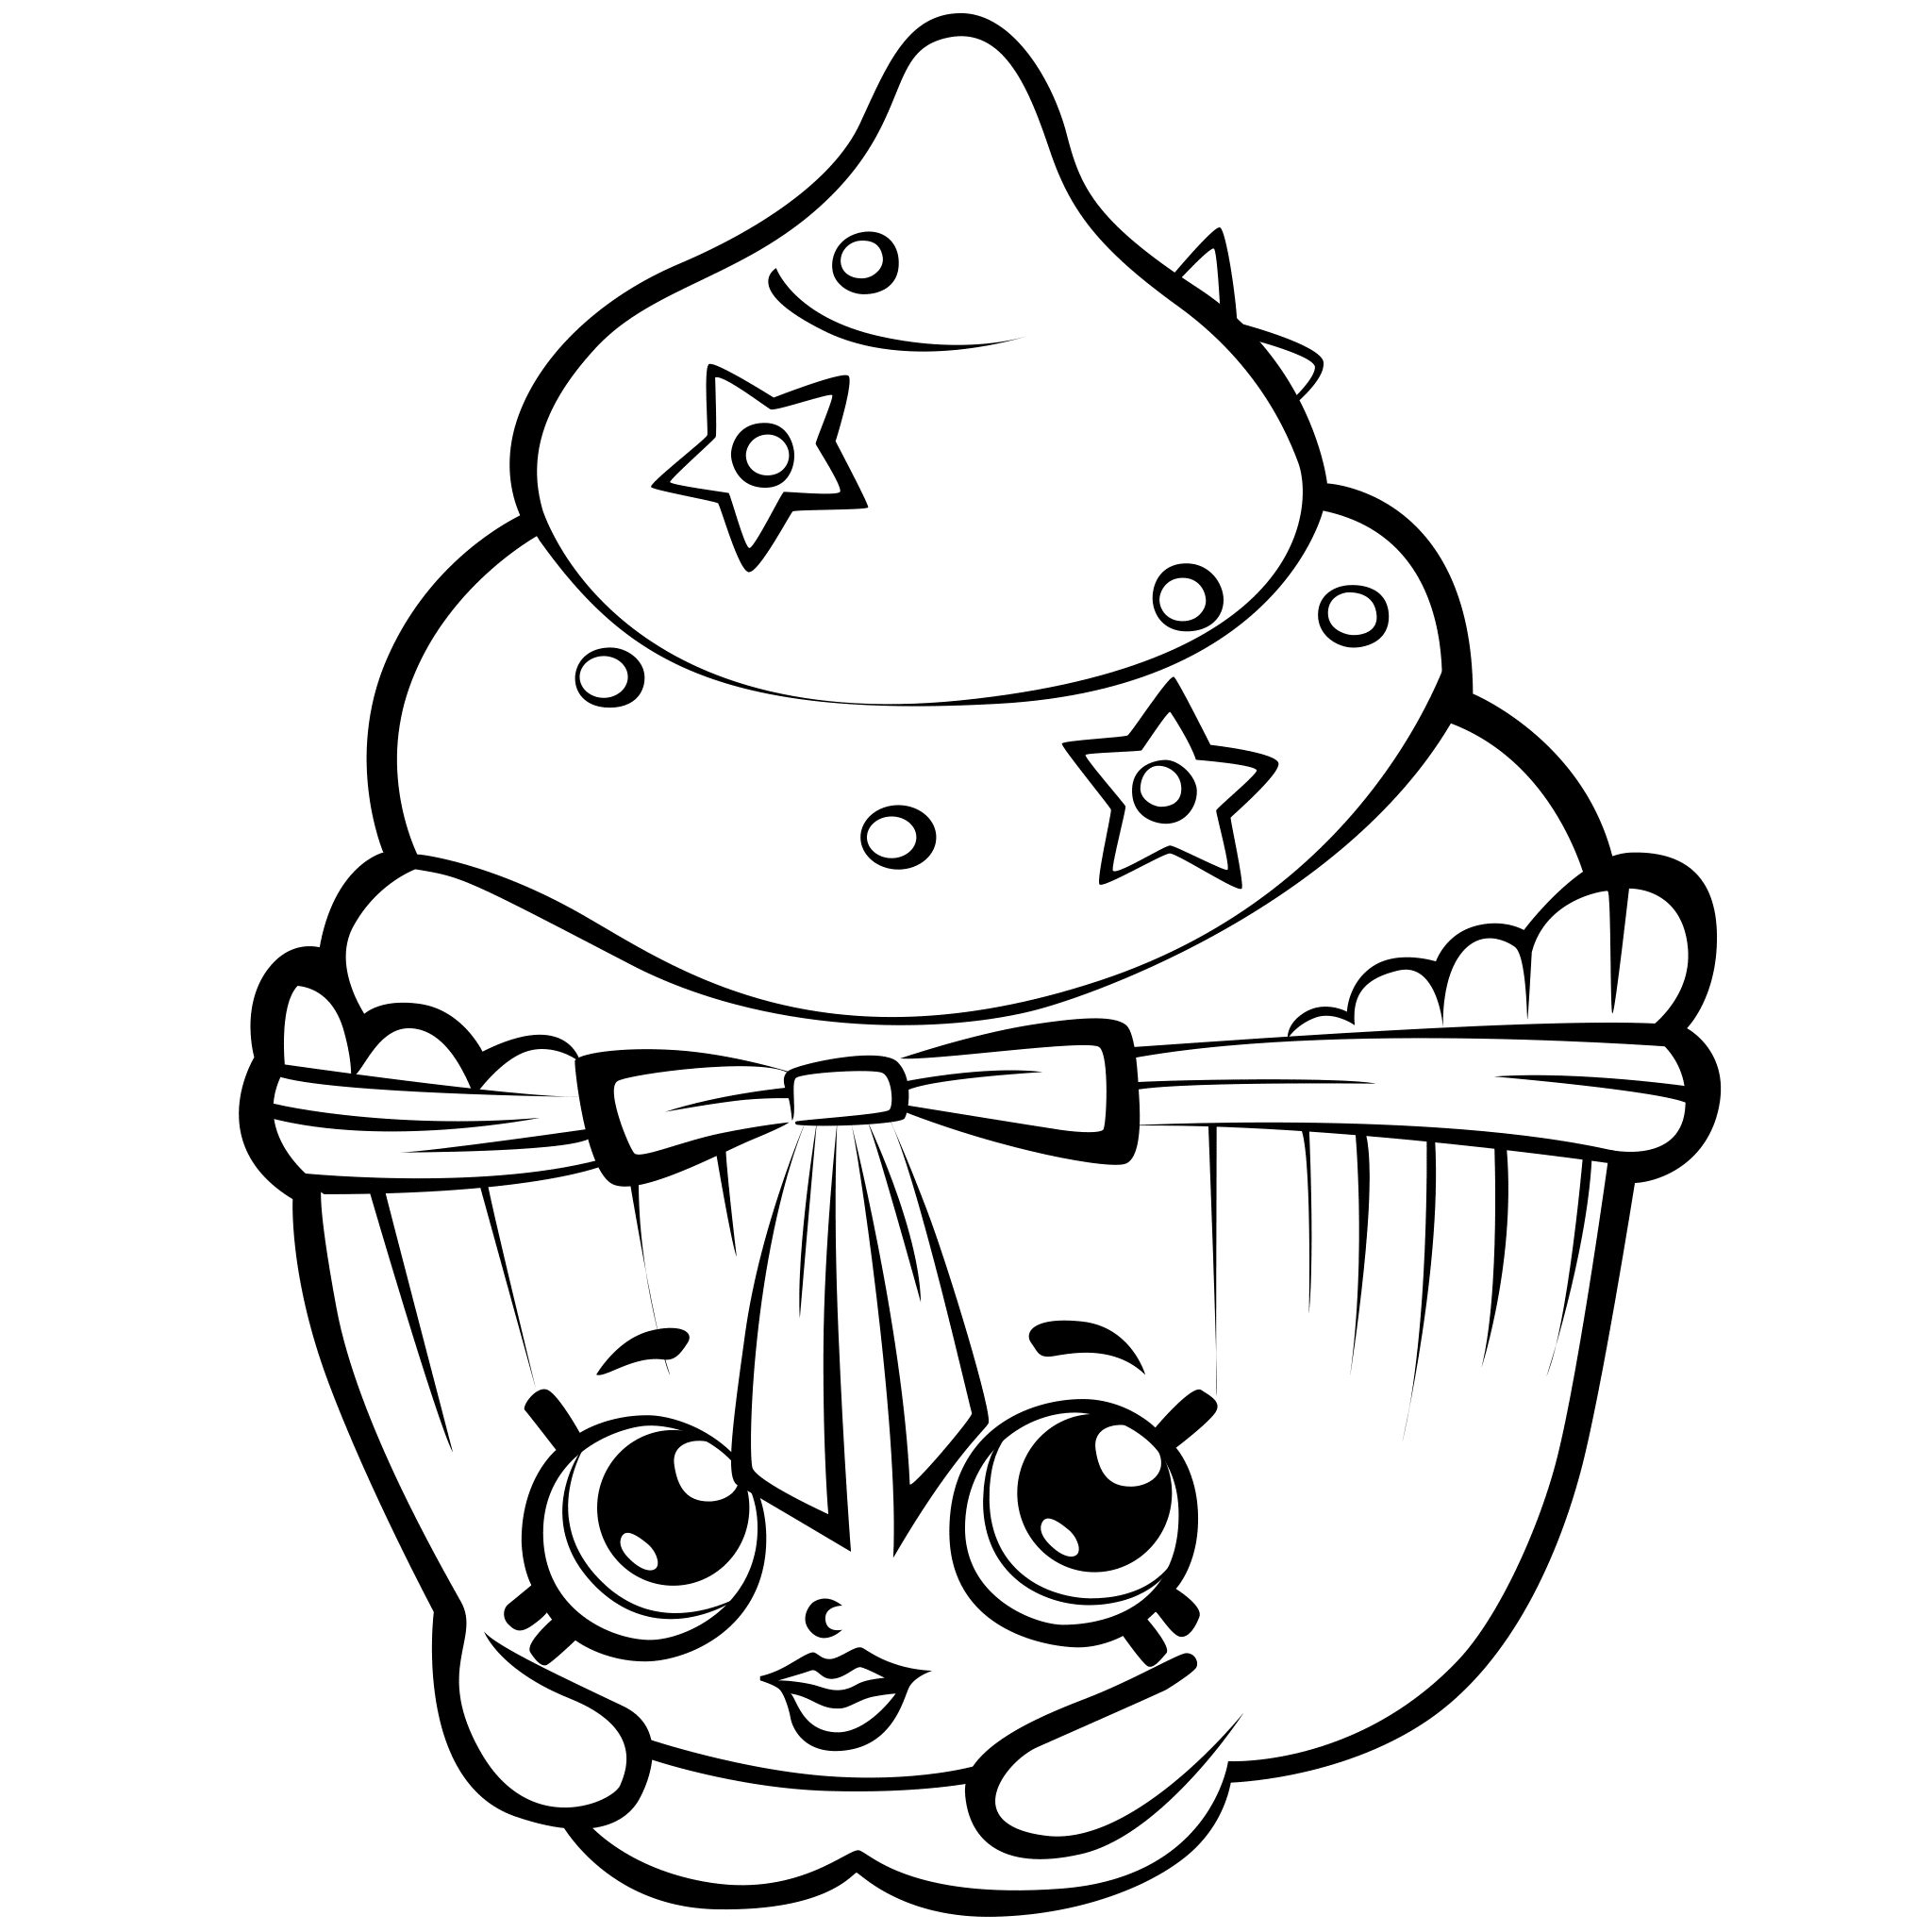 Shopkins Coloring Pages Best Coloring Pages for Kids Printable Of Shopkins Coloring Pages 45 Download